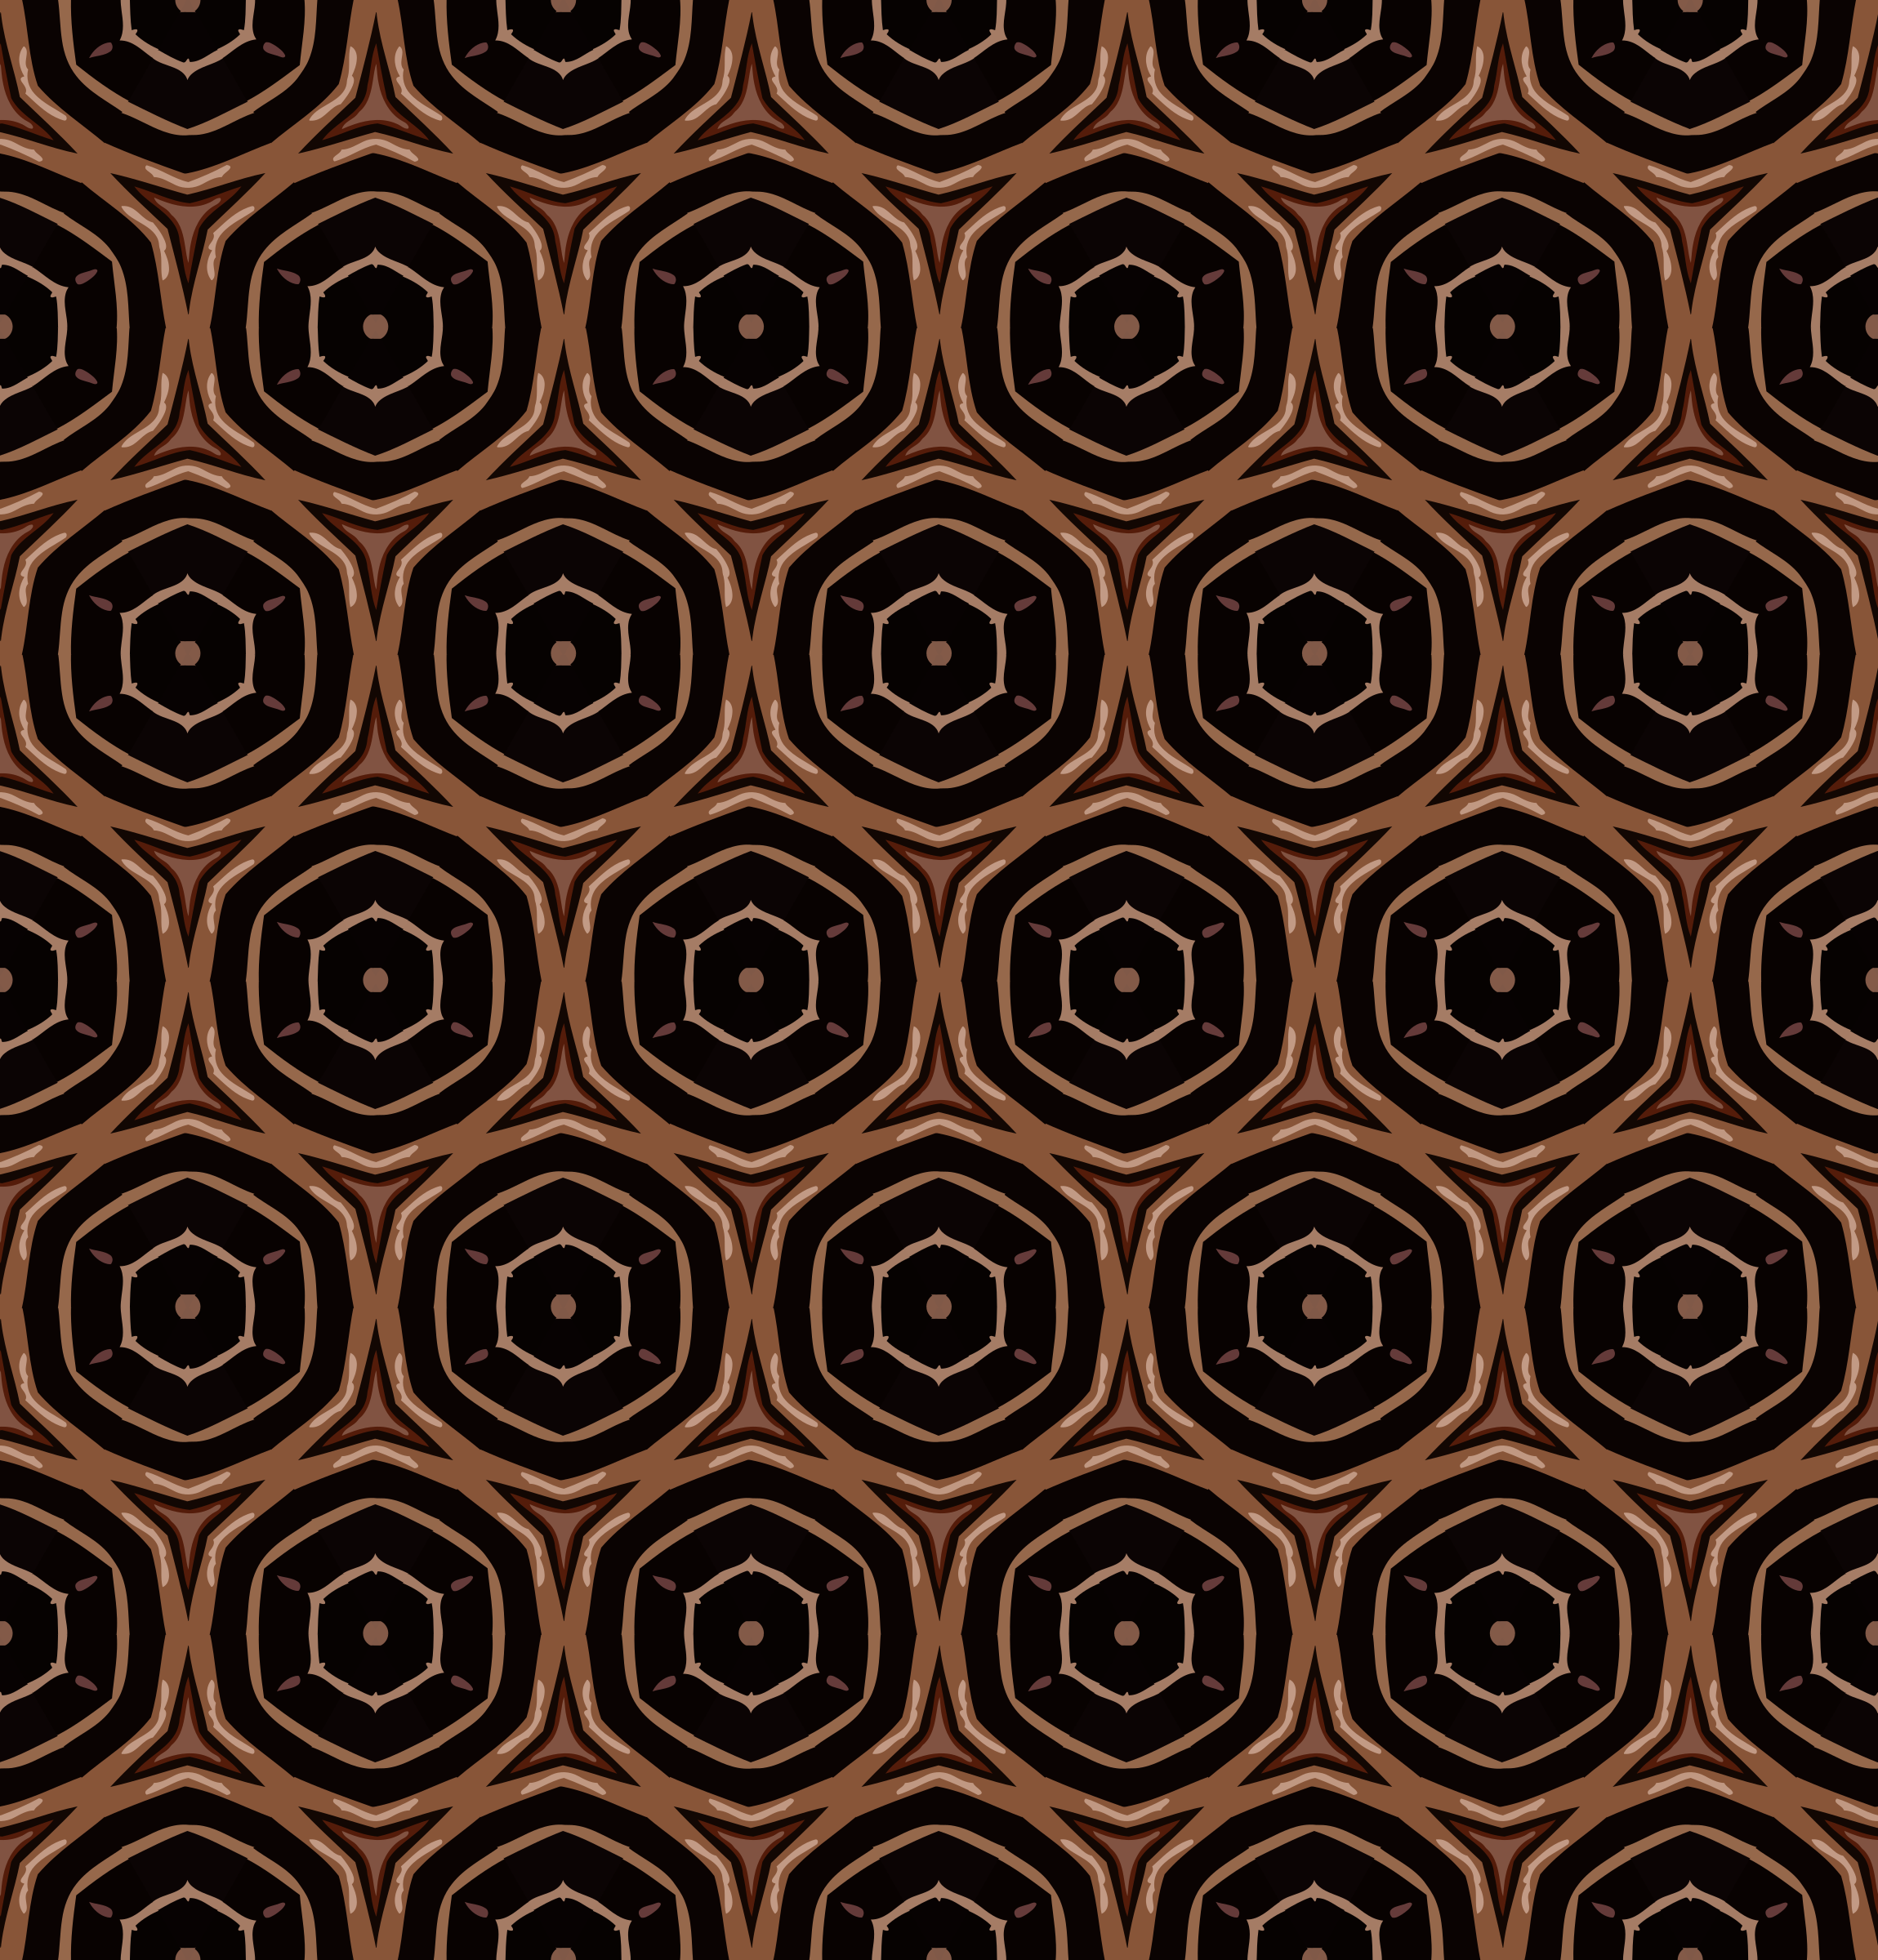 Background pattern 157 (colour 6) by Firkin